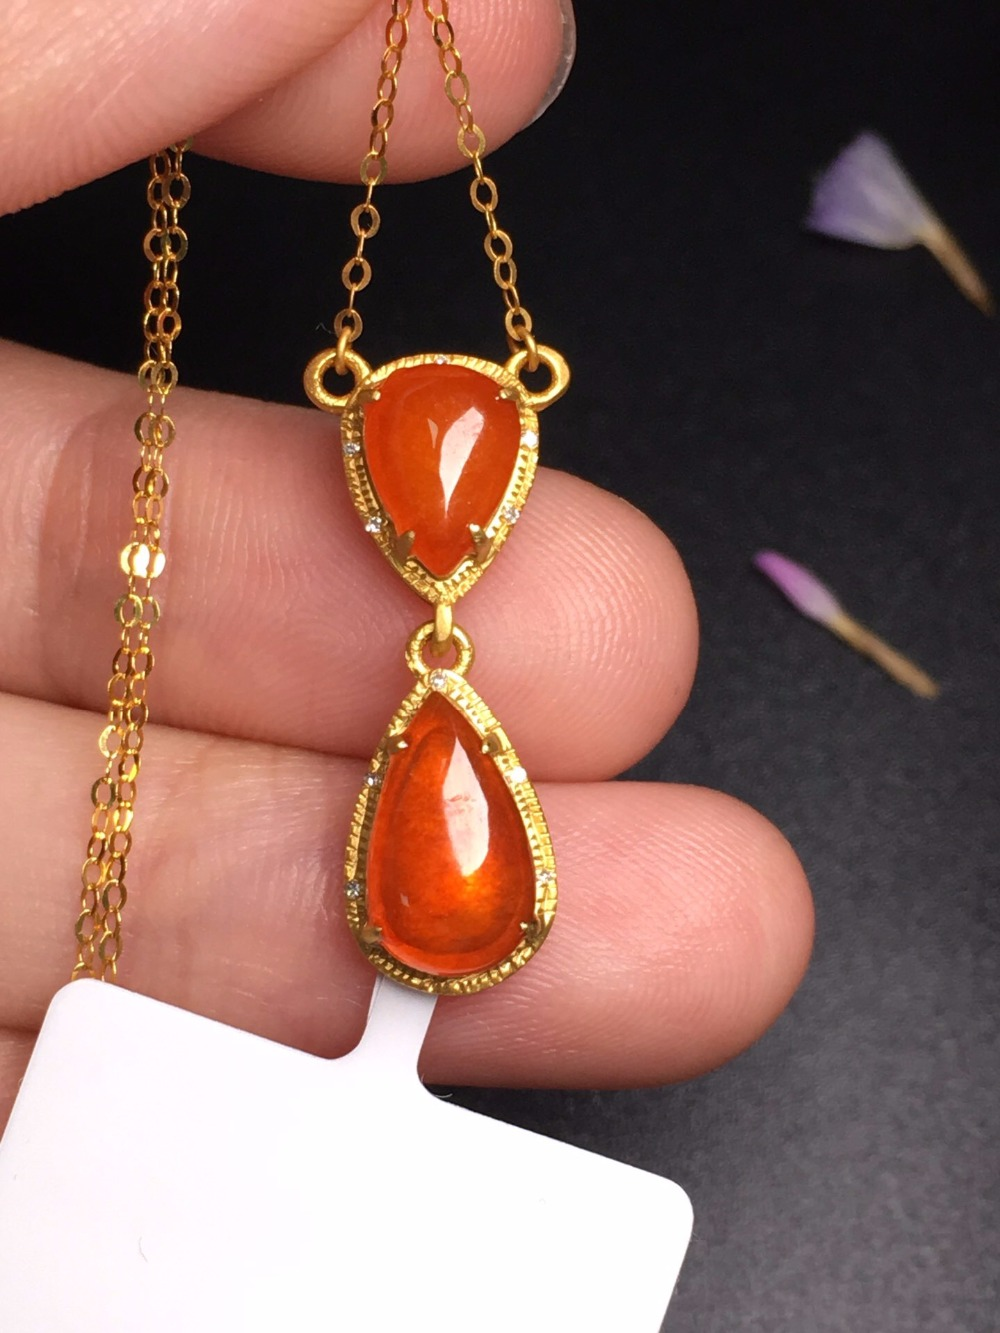 503 Fine Jewelry Pure 18 K Yellow Gold Jewelry 100% Natural Burmes Red Yellow Gemstone Pendant Necklace Fine Pendants Necklaces503 Fine Jewelry Pure 18 K Yellow Gold Jewelry 100% Natural Burmes Red Yellow Gemstone Pendant Necklace Fine Pendants Necklaces